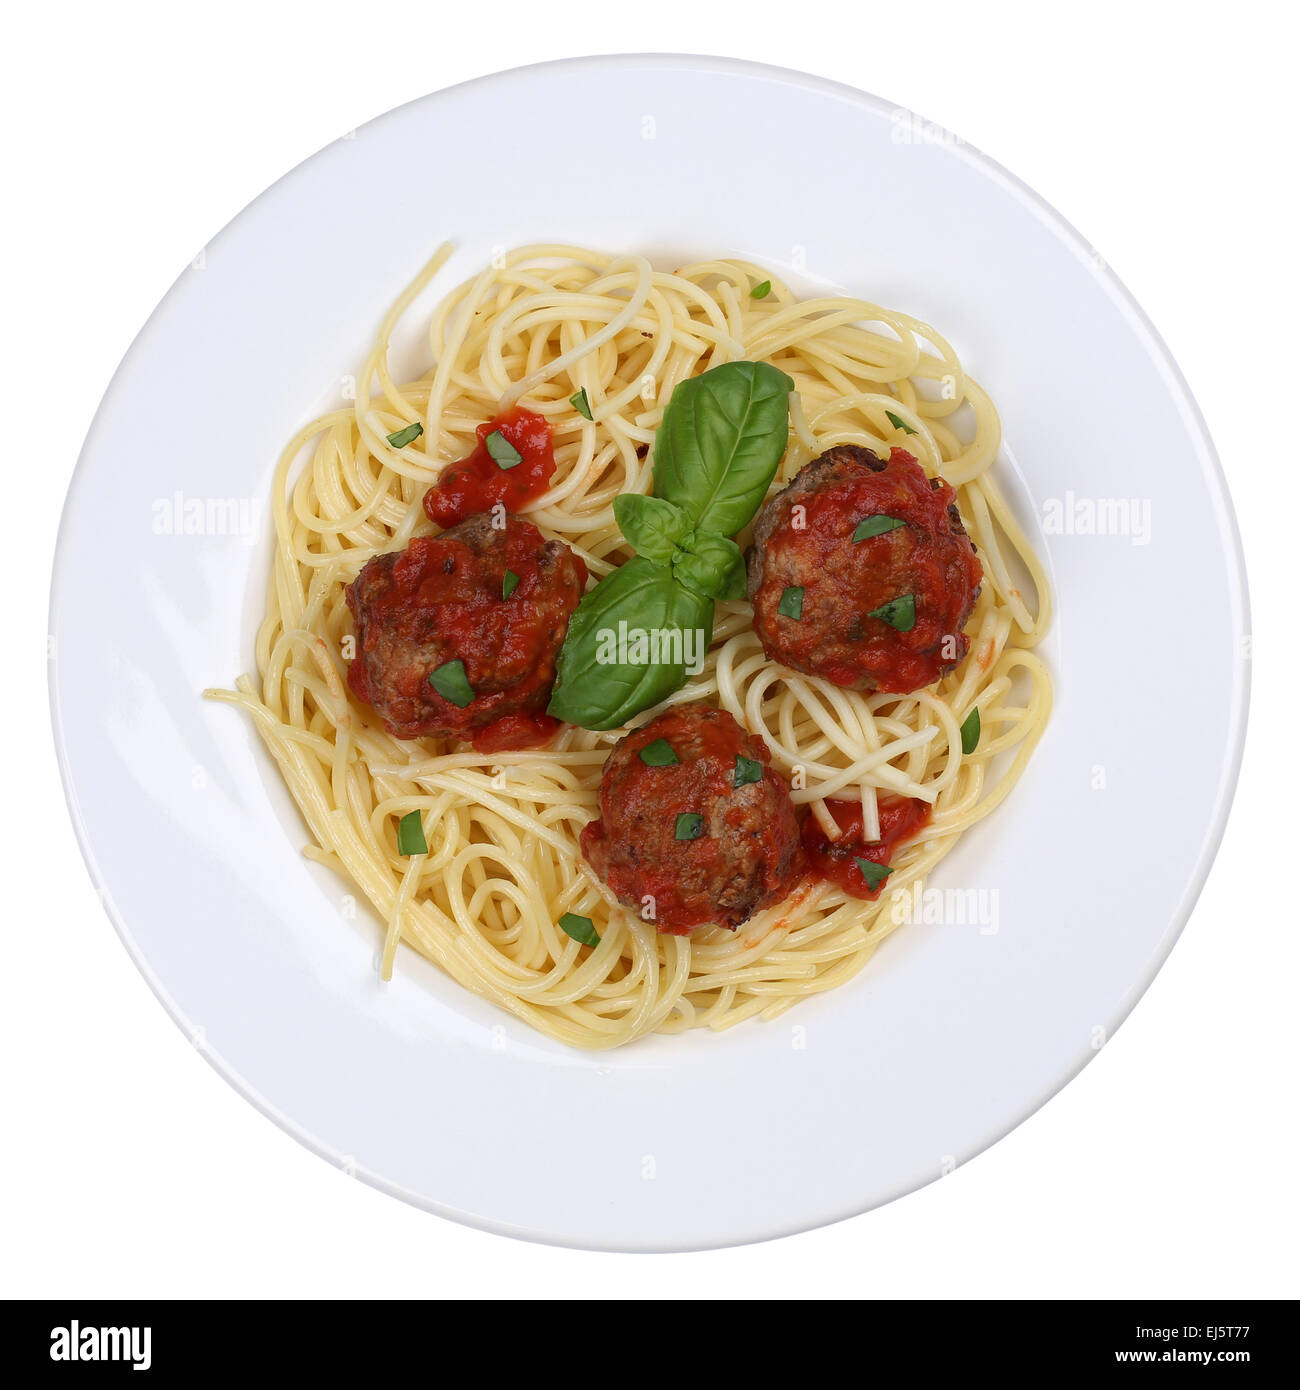 Spaghetti with meatballs noodles pasta meal on a plate isolated - Stock Image